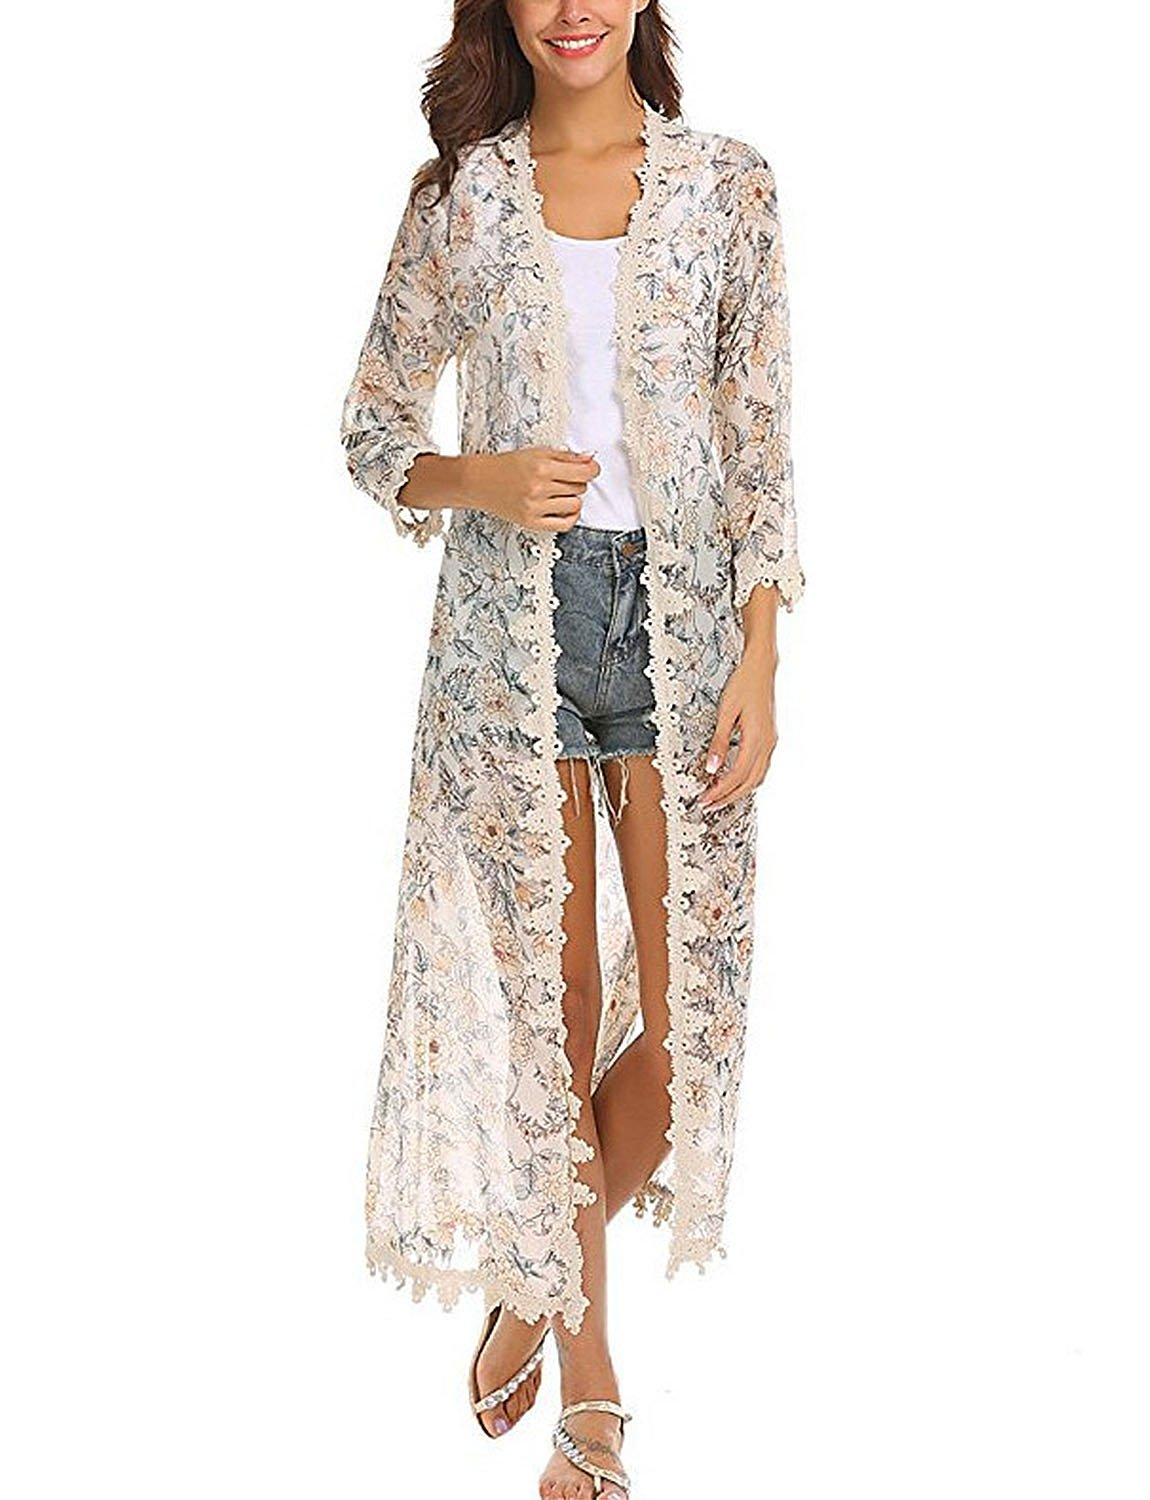 BB&KK Women's Floral Kimono Tops Short Sleeves Sheer Chiffon Swimsuit Cover Ups Loose Long Cardigan Capes White L